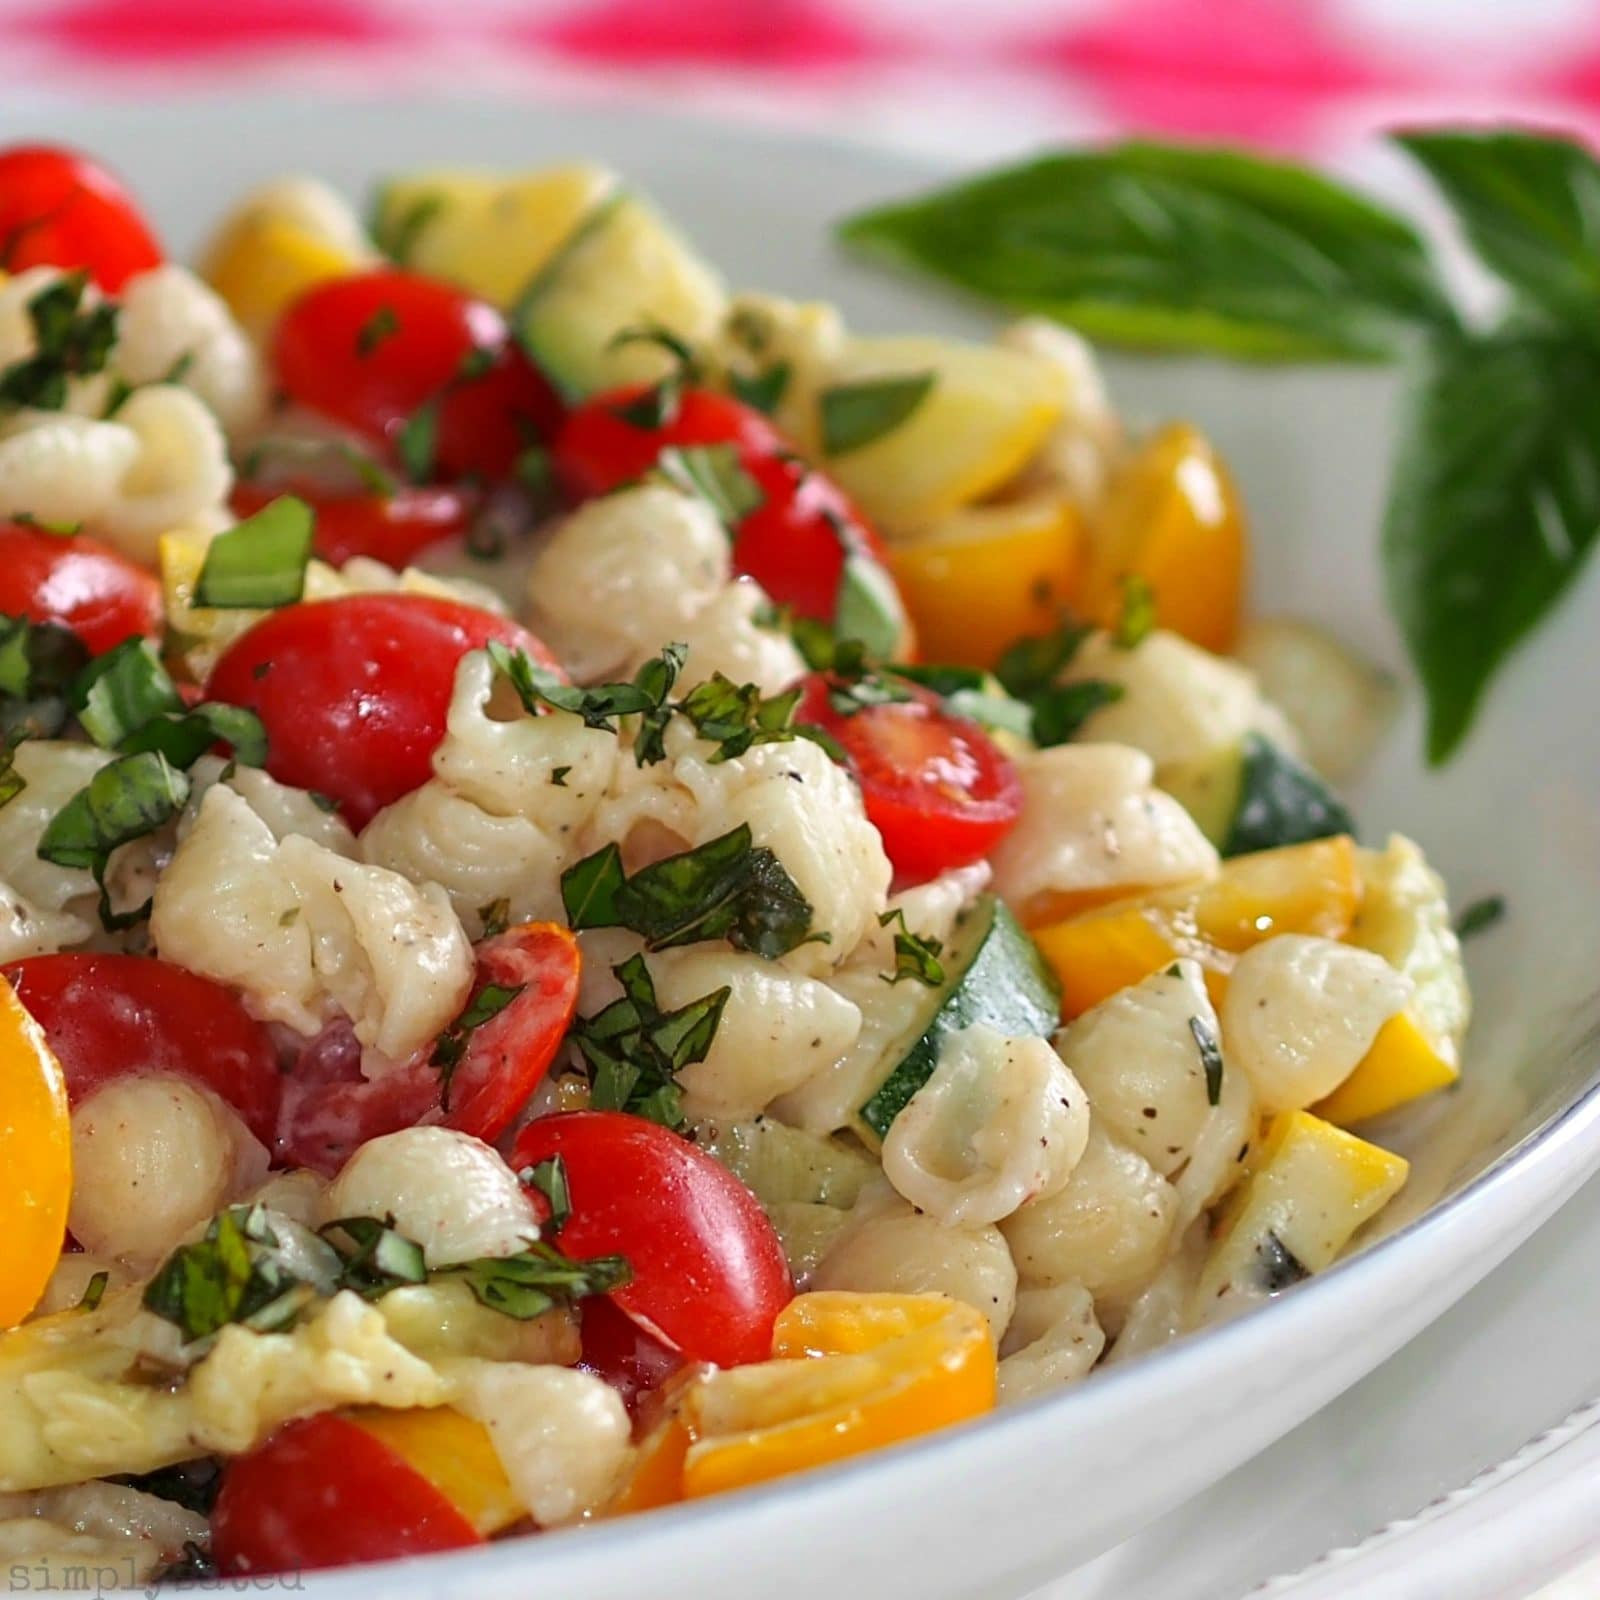 Summer Spaghetti Salad  Summer Pasta Salad with Boursin Simply Sated